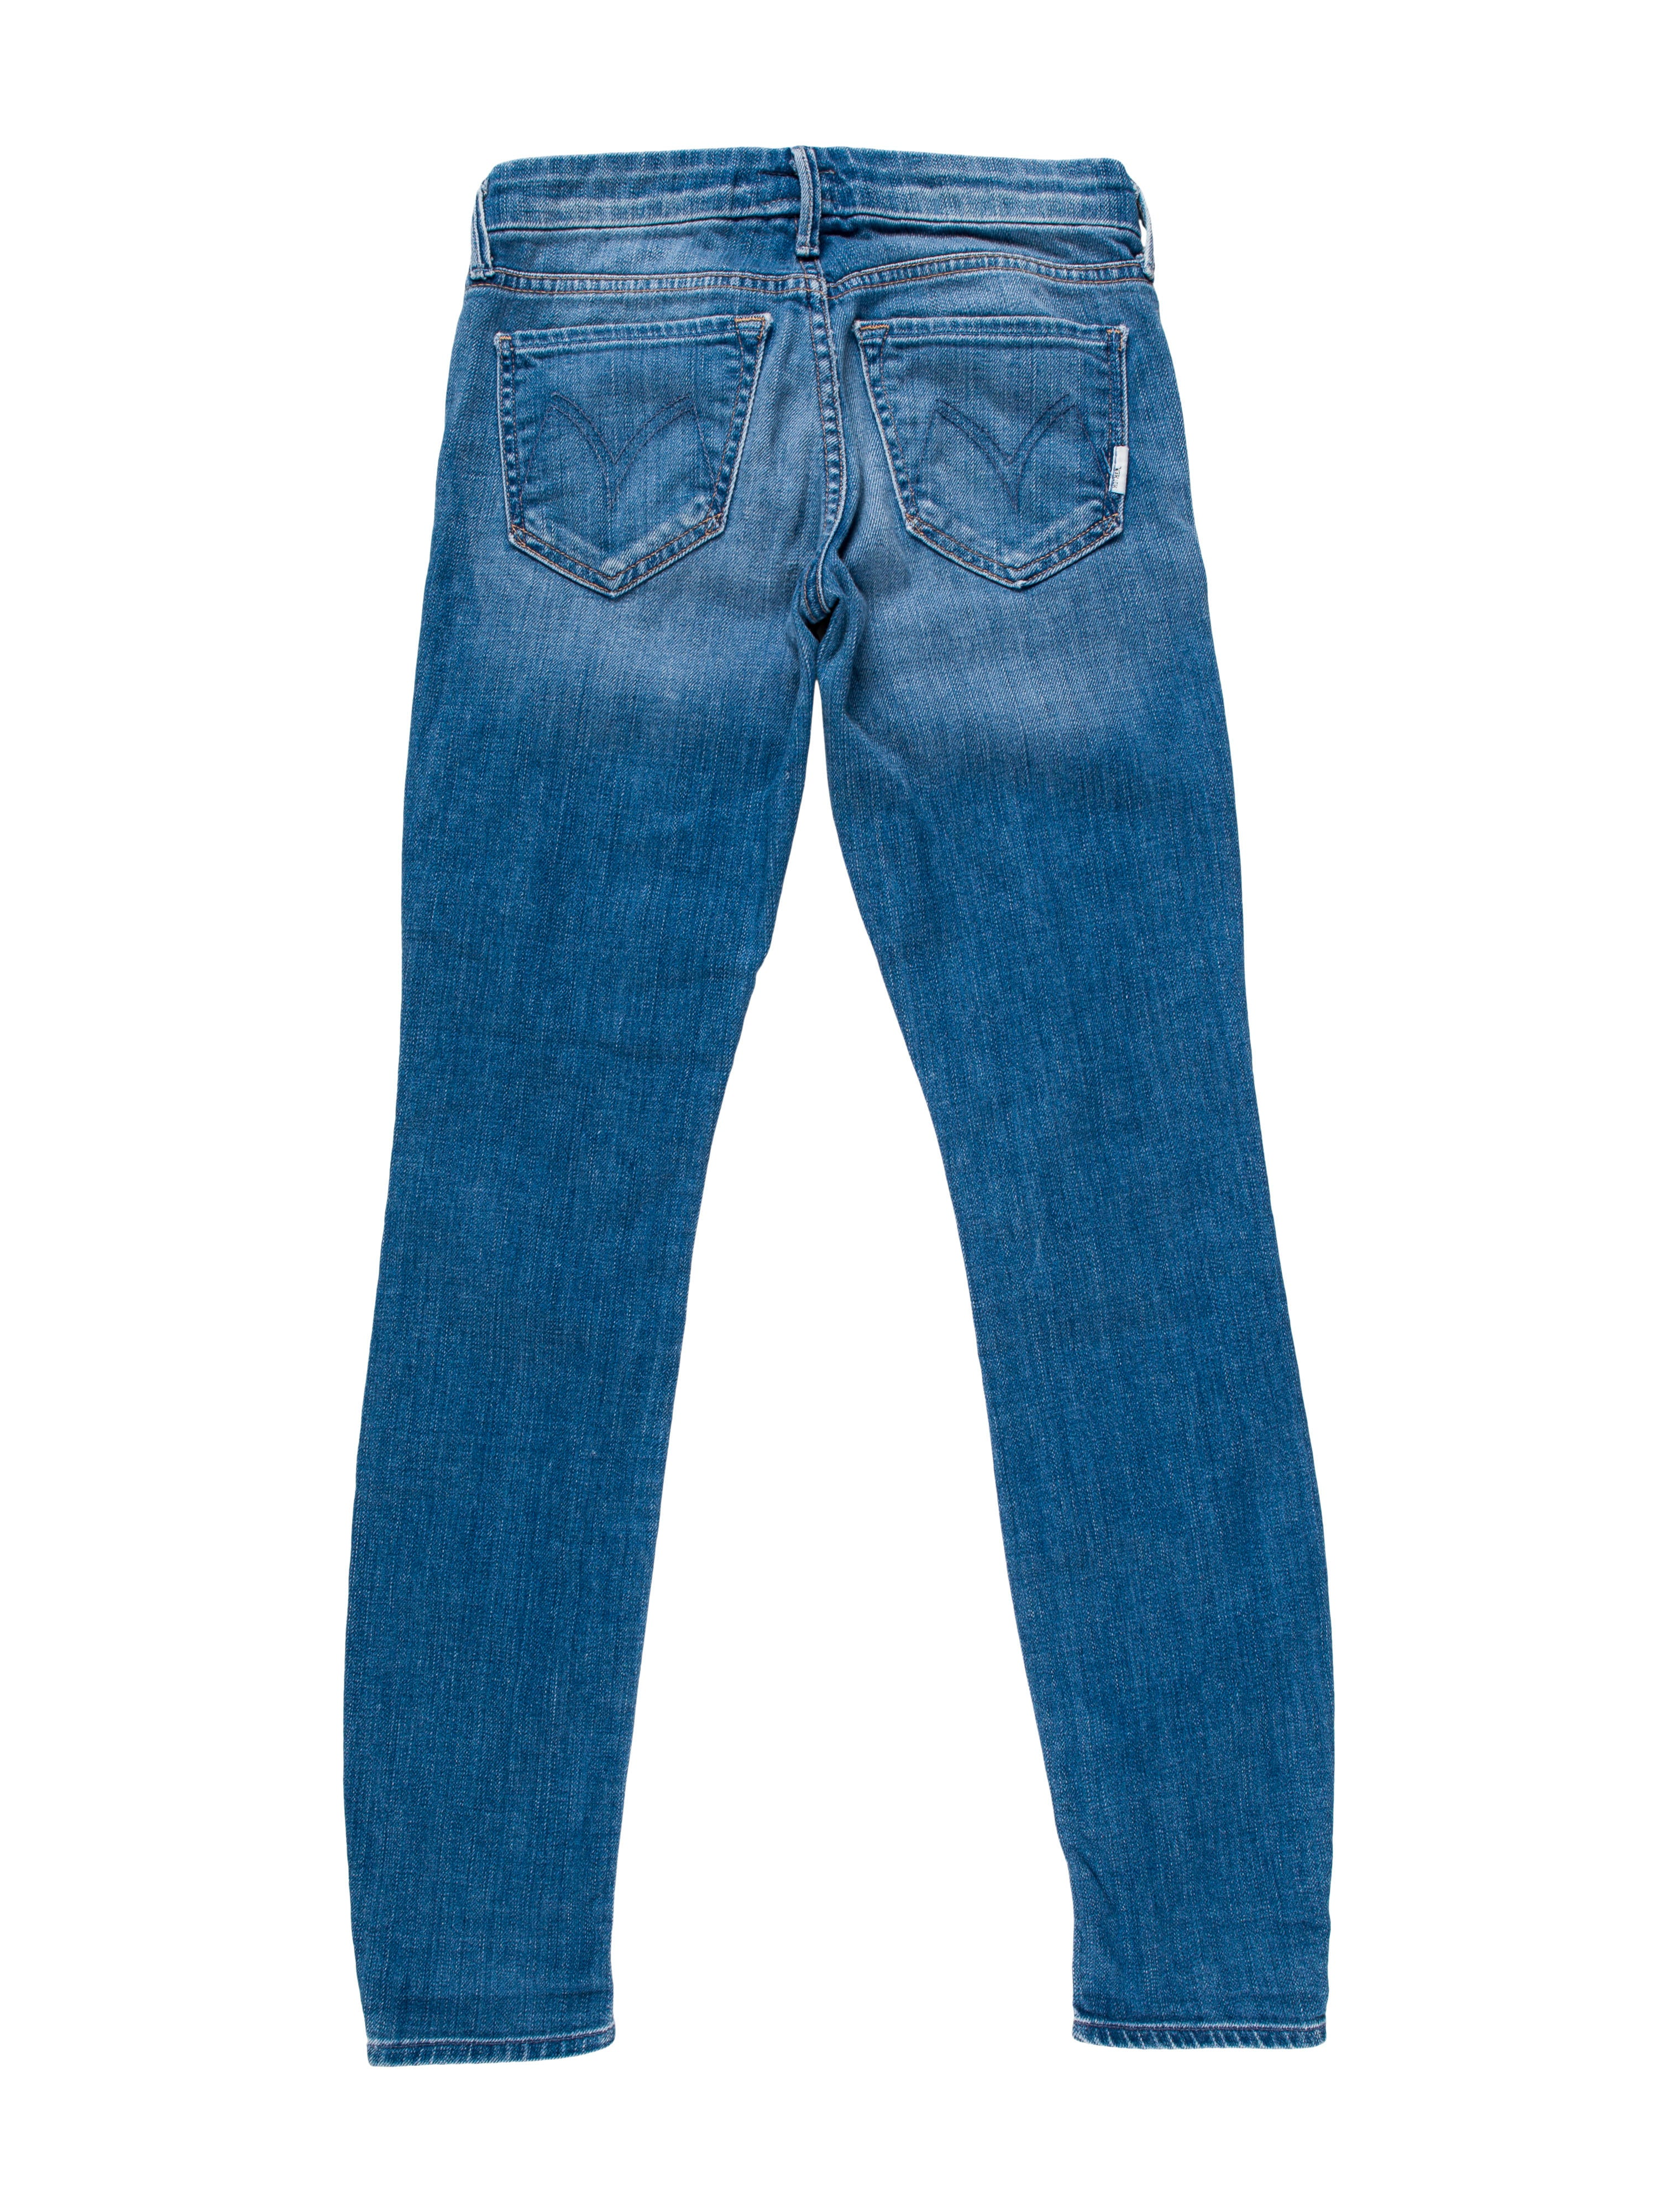 Find your perfect pair of women's skinny jeans at Express! We have sleek skinnies in a variety of washes, colors and styles to match your every mood. Show off your shoes, lengthen your legs and strut your stuff in absolute confidence thanks to Express women's denim.